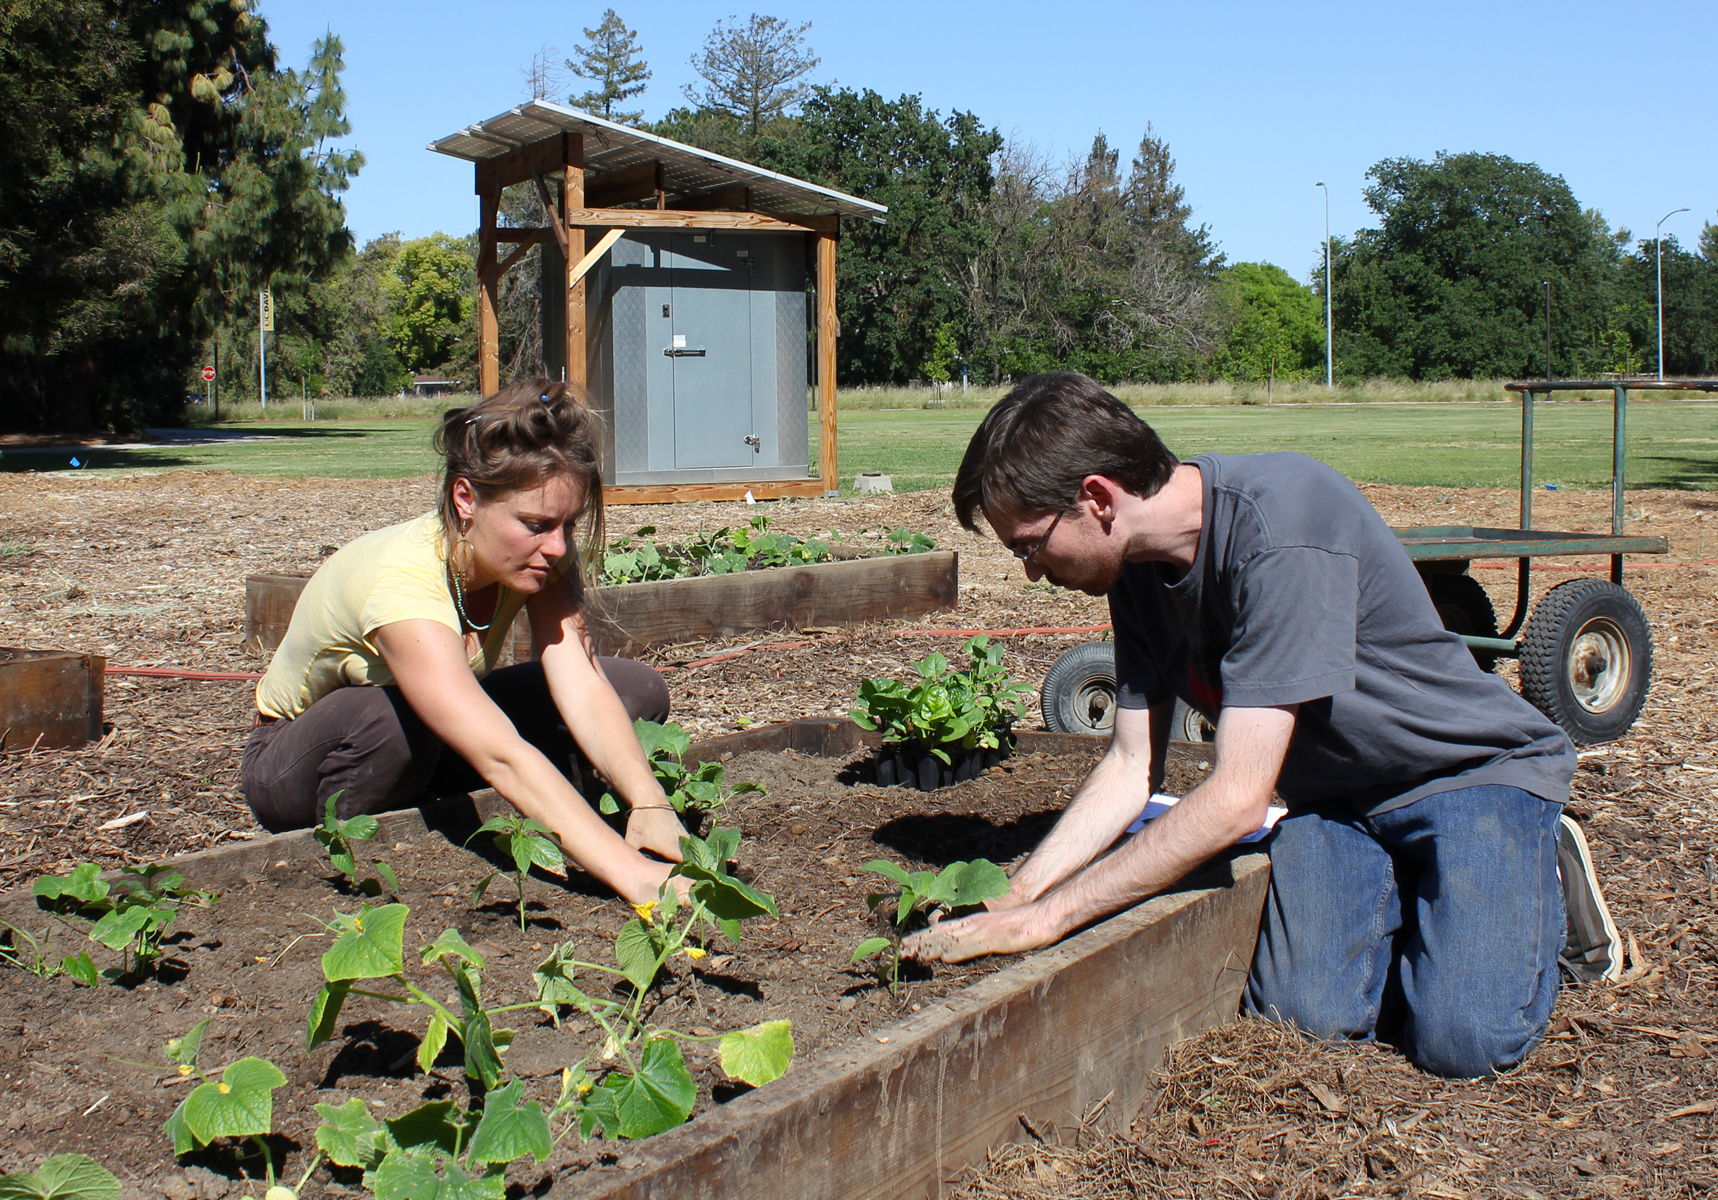 UC Davis students plant vegetable seedlings in raised garden beds on campus, with cooling shed and solar panels in background.